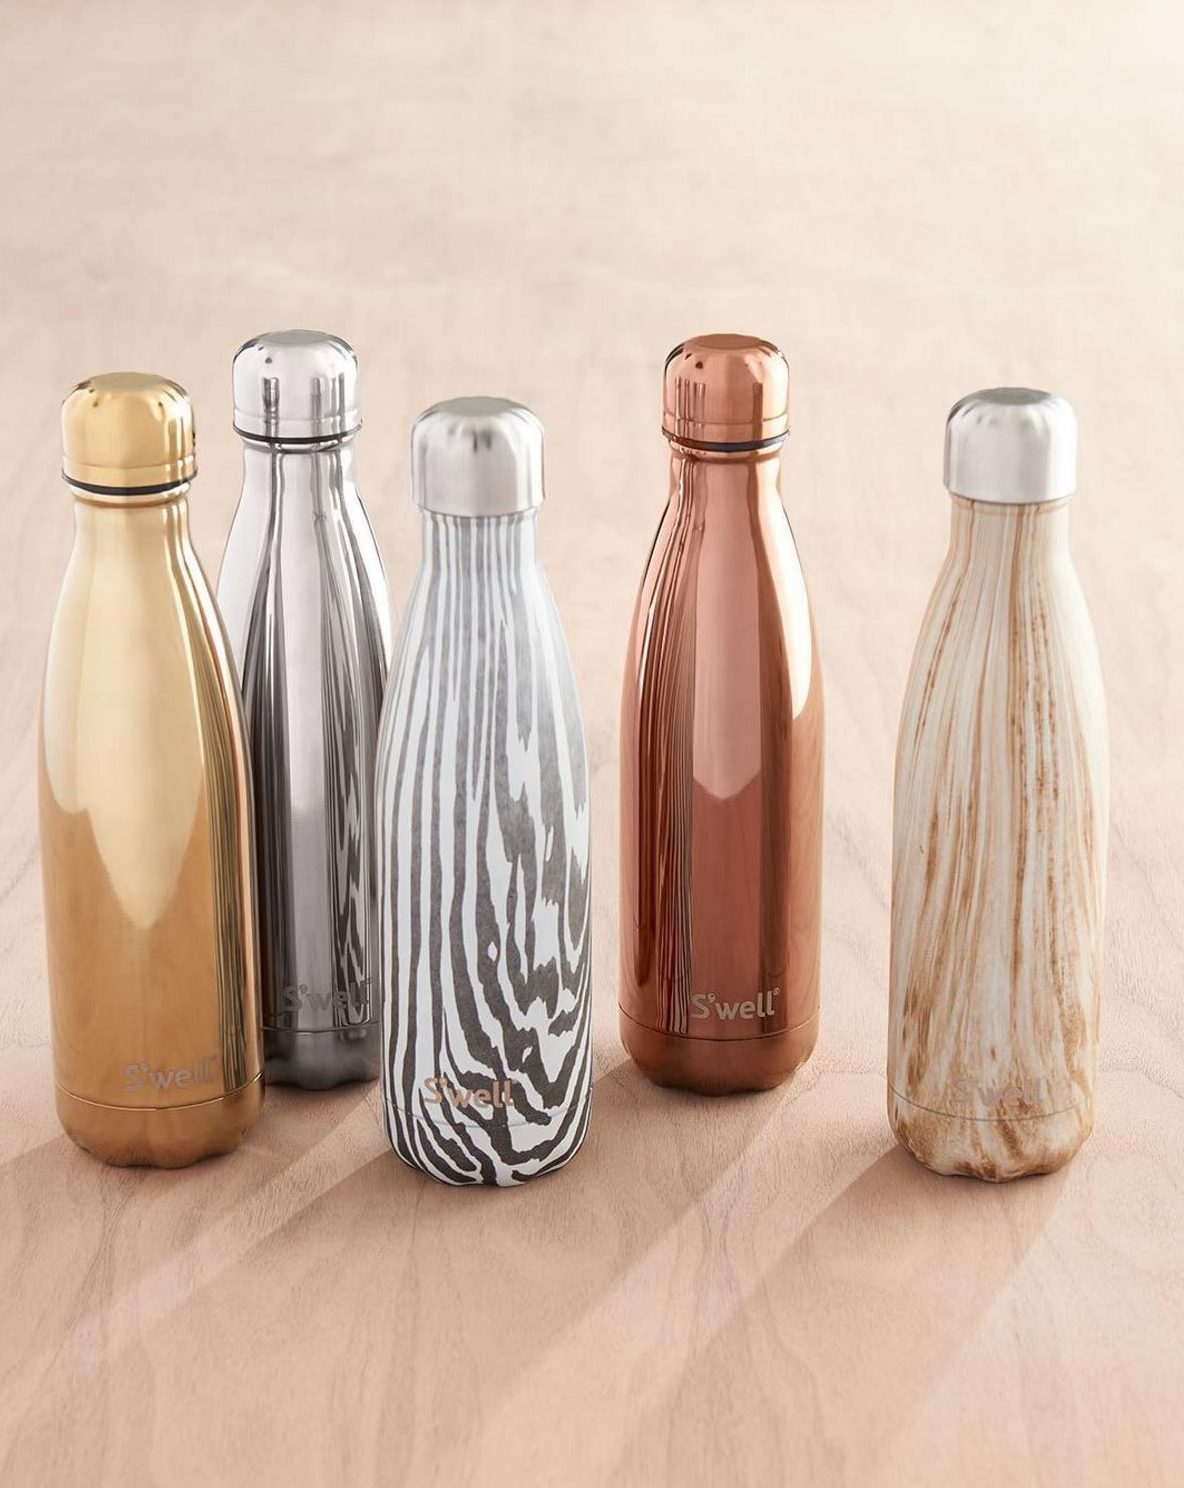 SWell-Bottles-in-Many-Colors-and-Patterns-e1487885390192.jpg